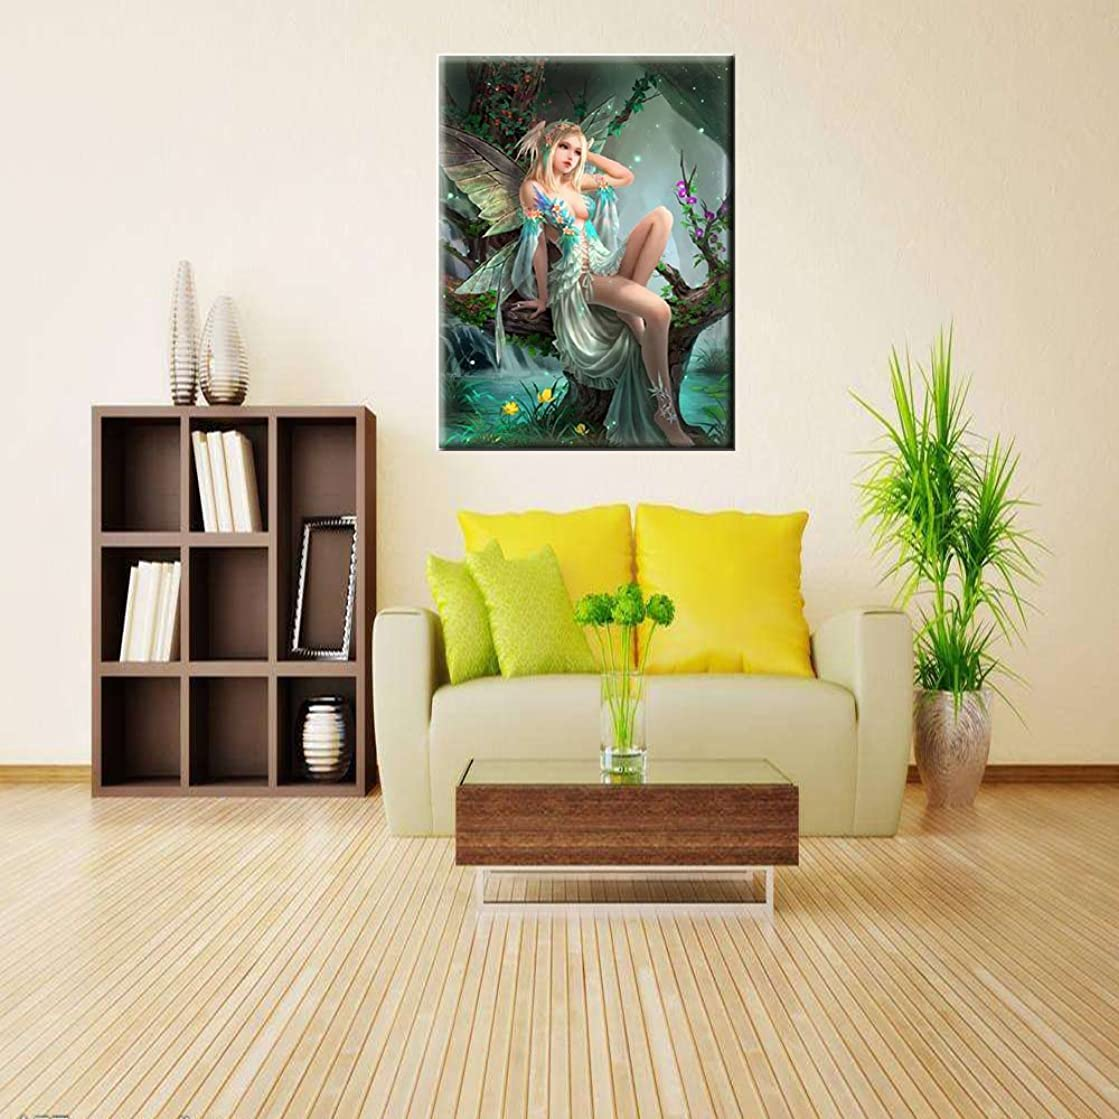 5D DIY Full Drills Diamond Painting Kits By Number, Forest Fairy, Counted Cross Stitch Kit Rhinestone Embroidery Arts for Home Wall Decor